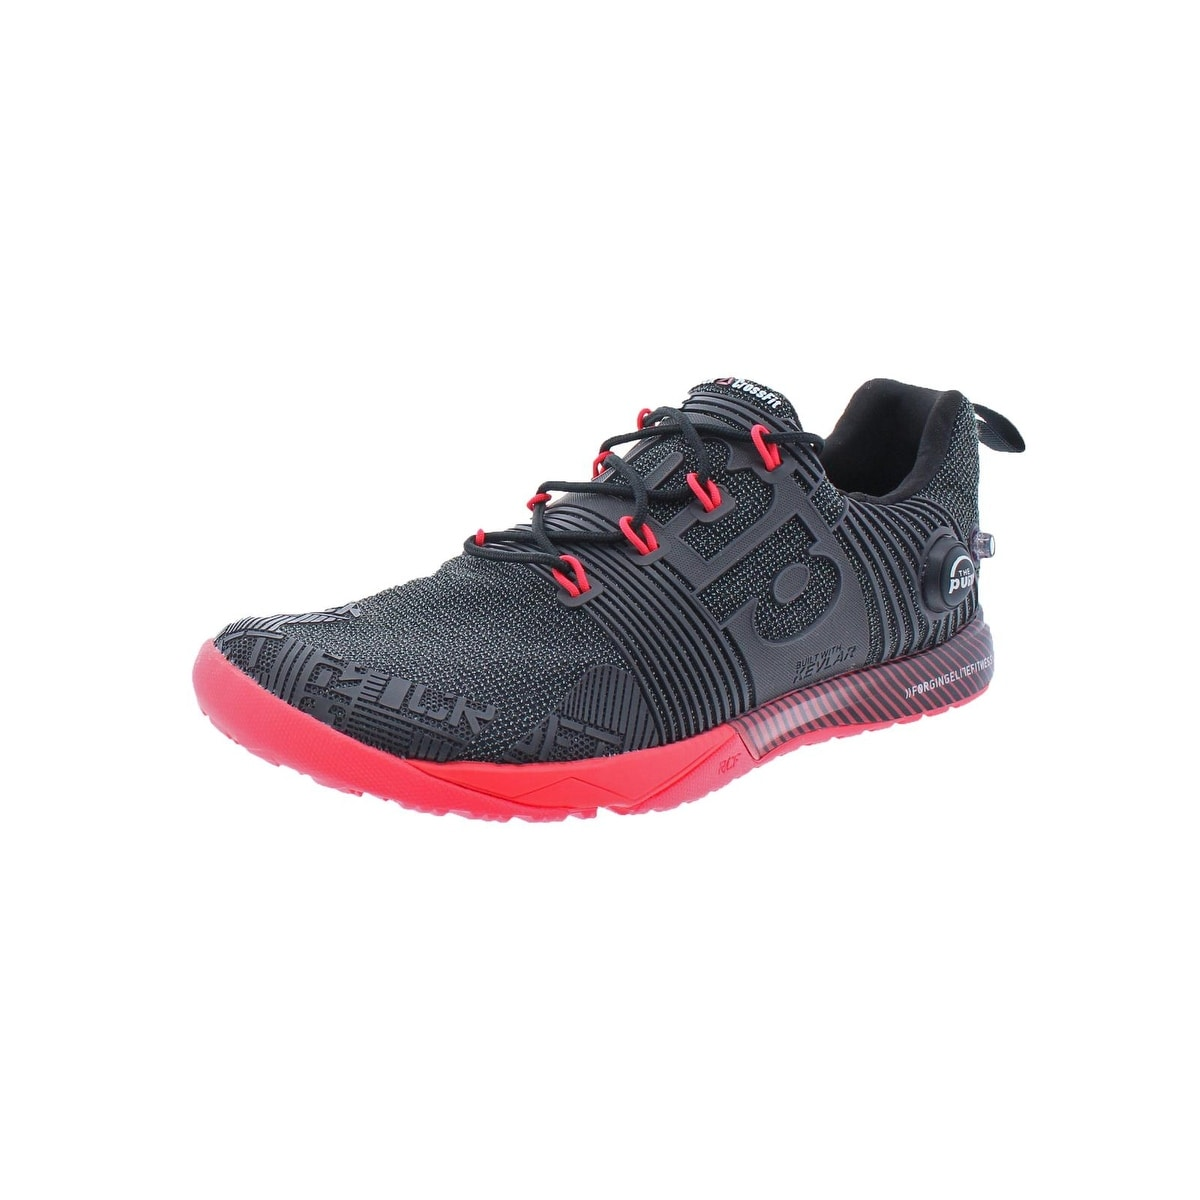 Reebok Women's Crossfit Nano Pump Fusion Cross Training Shoe